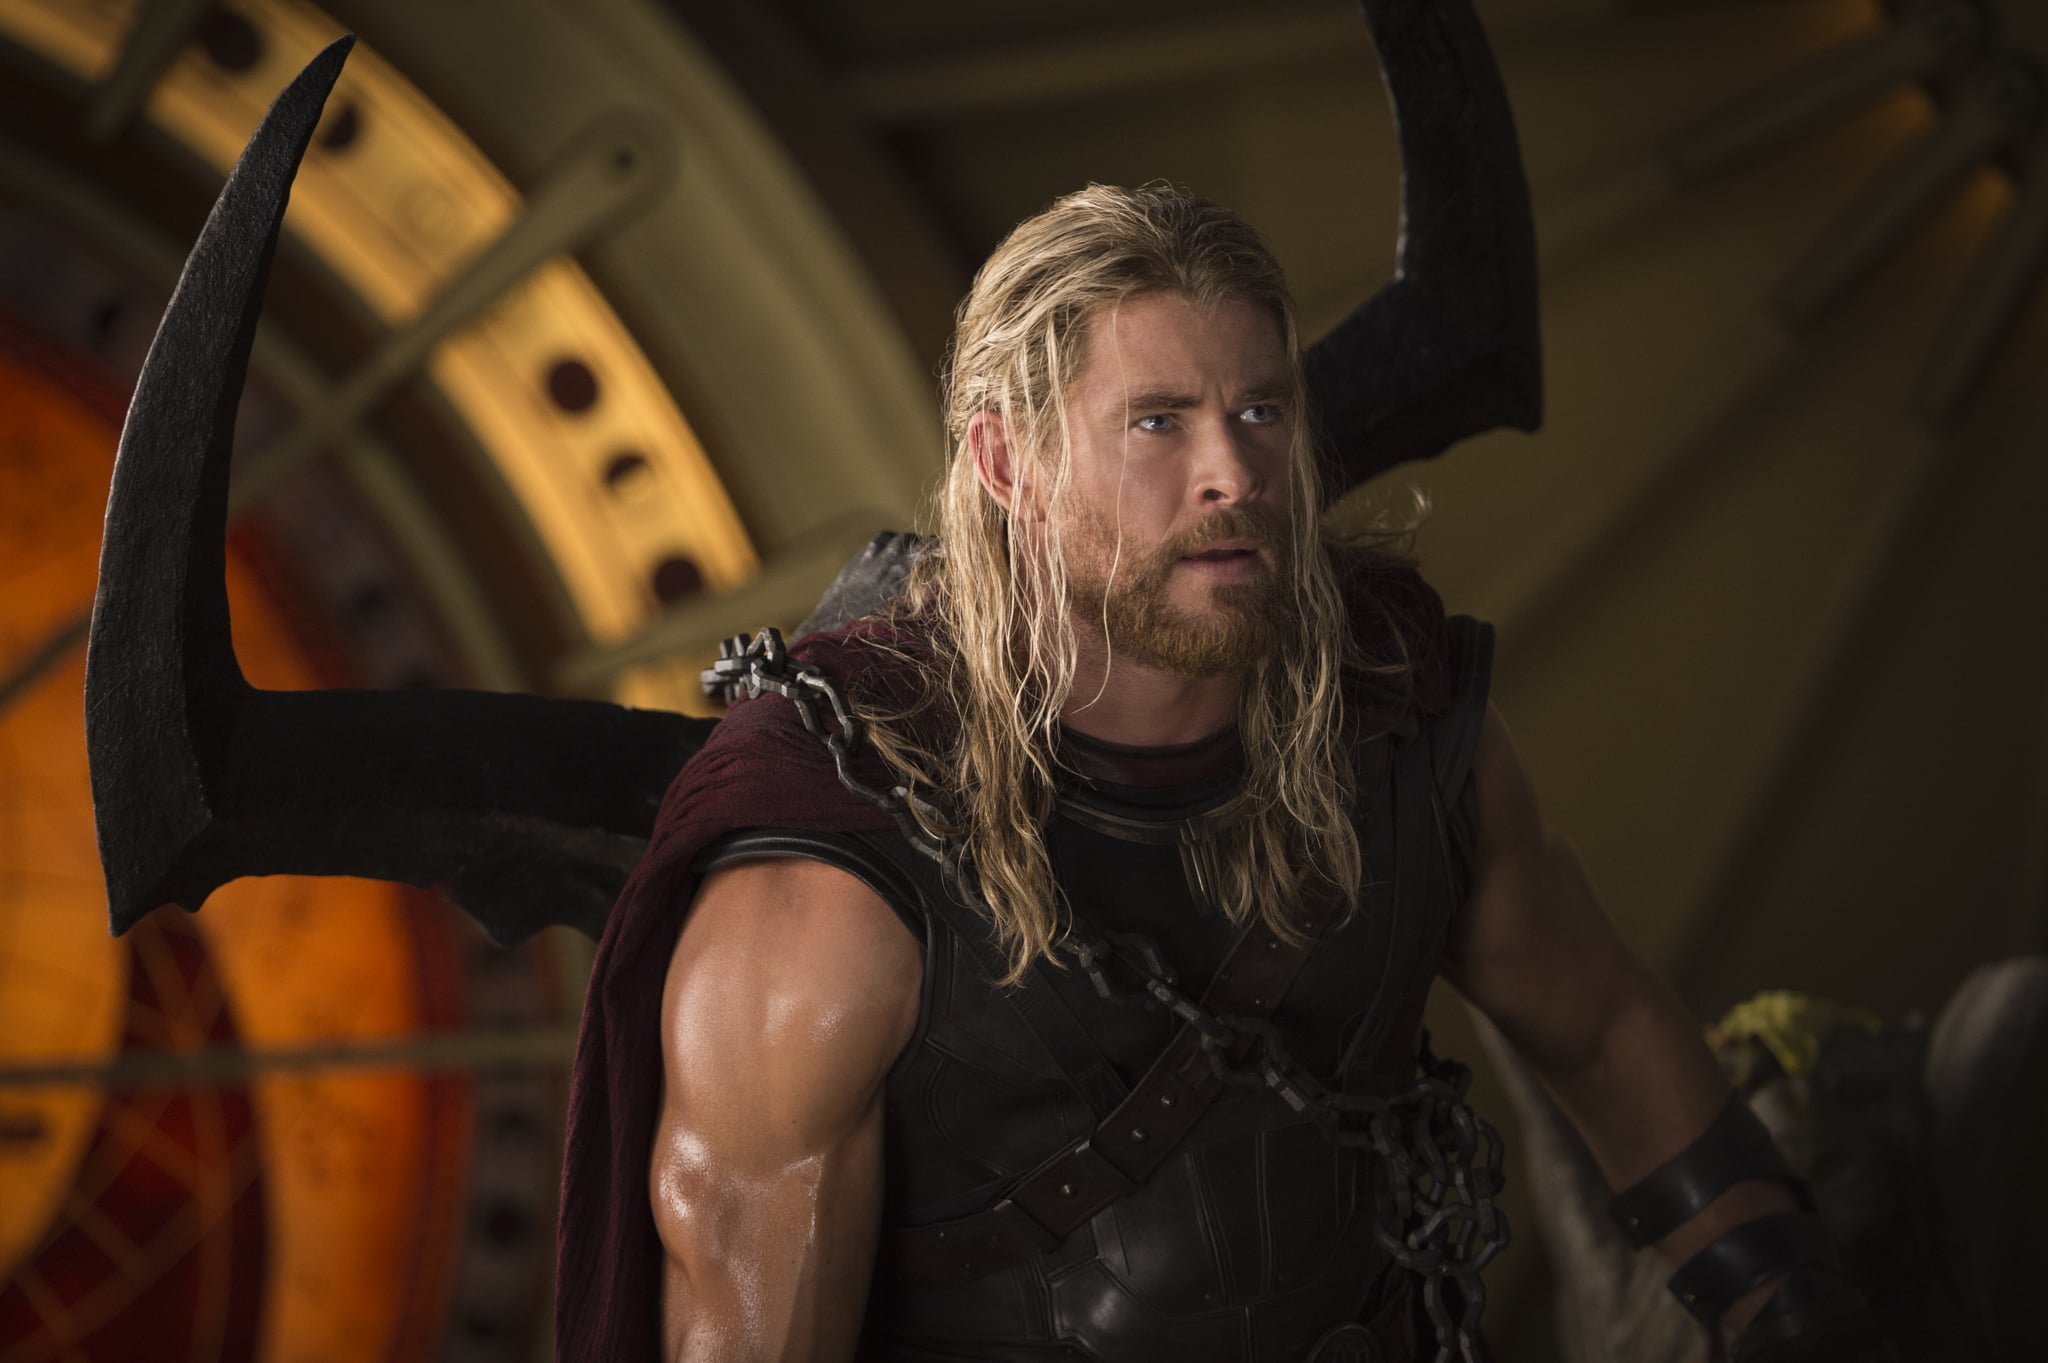 Why Yes, That IS Who You Think It Is at the Beginning of Thor: Ragnarok